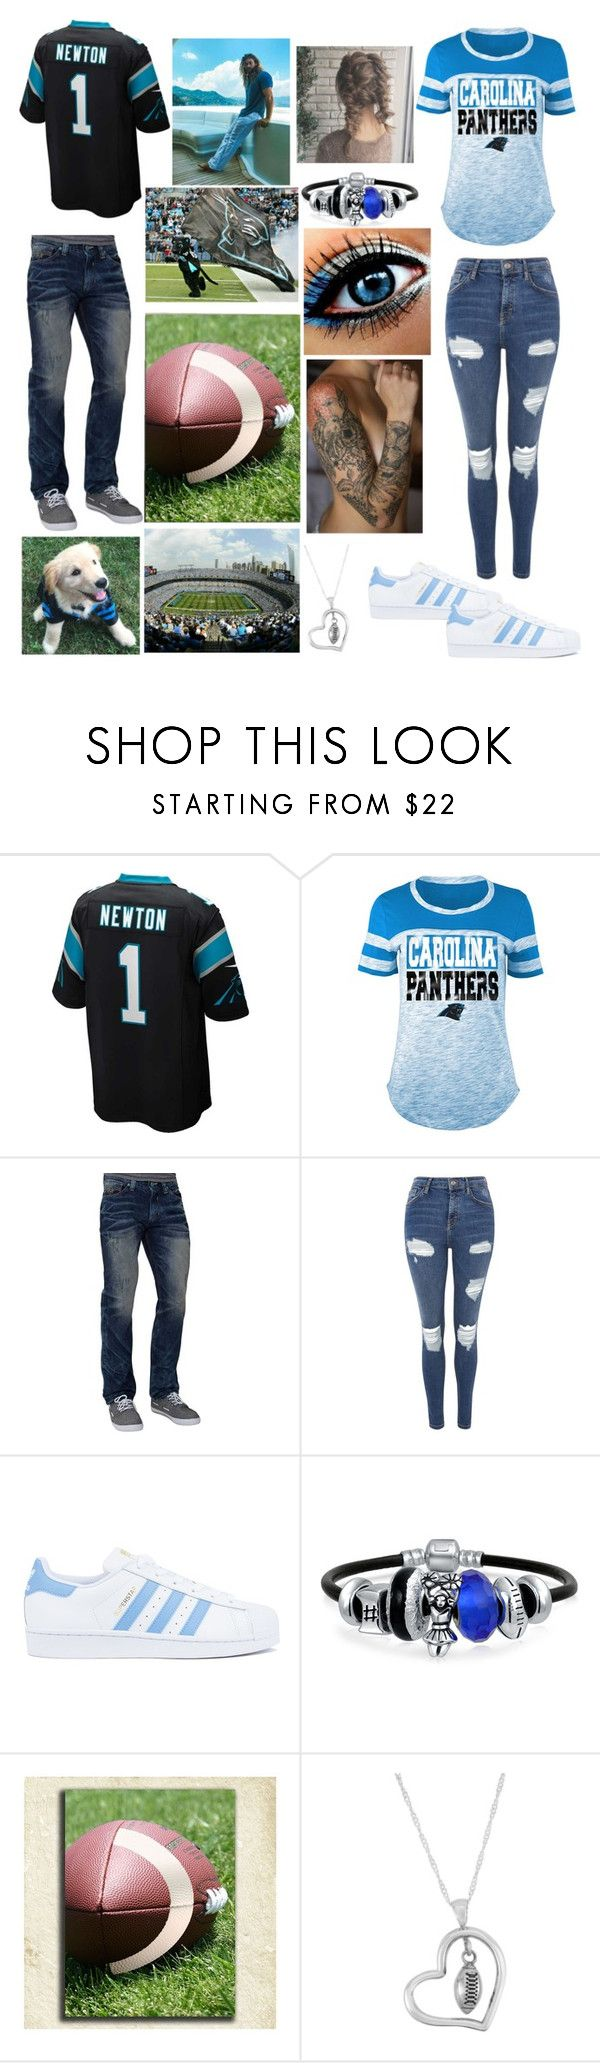 """""""Caroline Panthers game!🏈"""" by amalik787 ❤ liked on Polyvore featuring NIKE, 5th & Ocean, Affliction, Topshop, adidas, Bling Jewelry and Dayna U"""